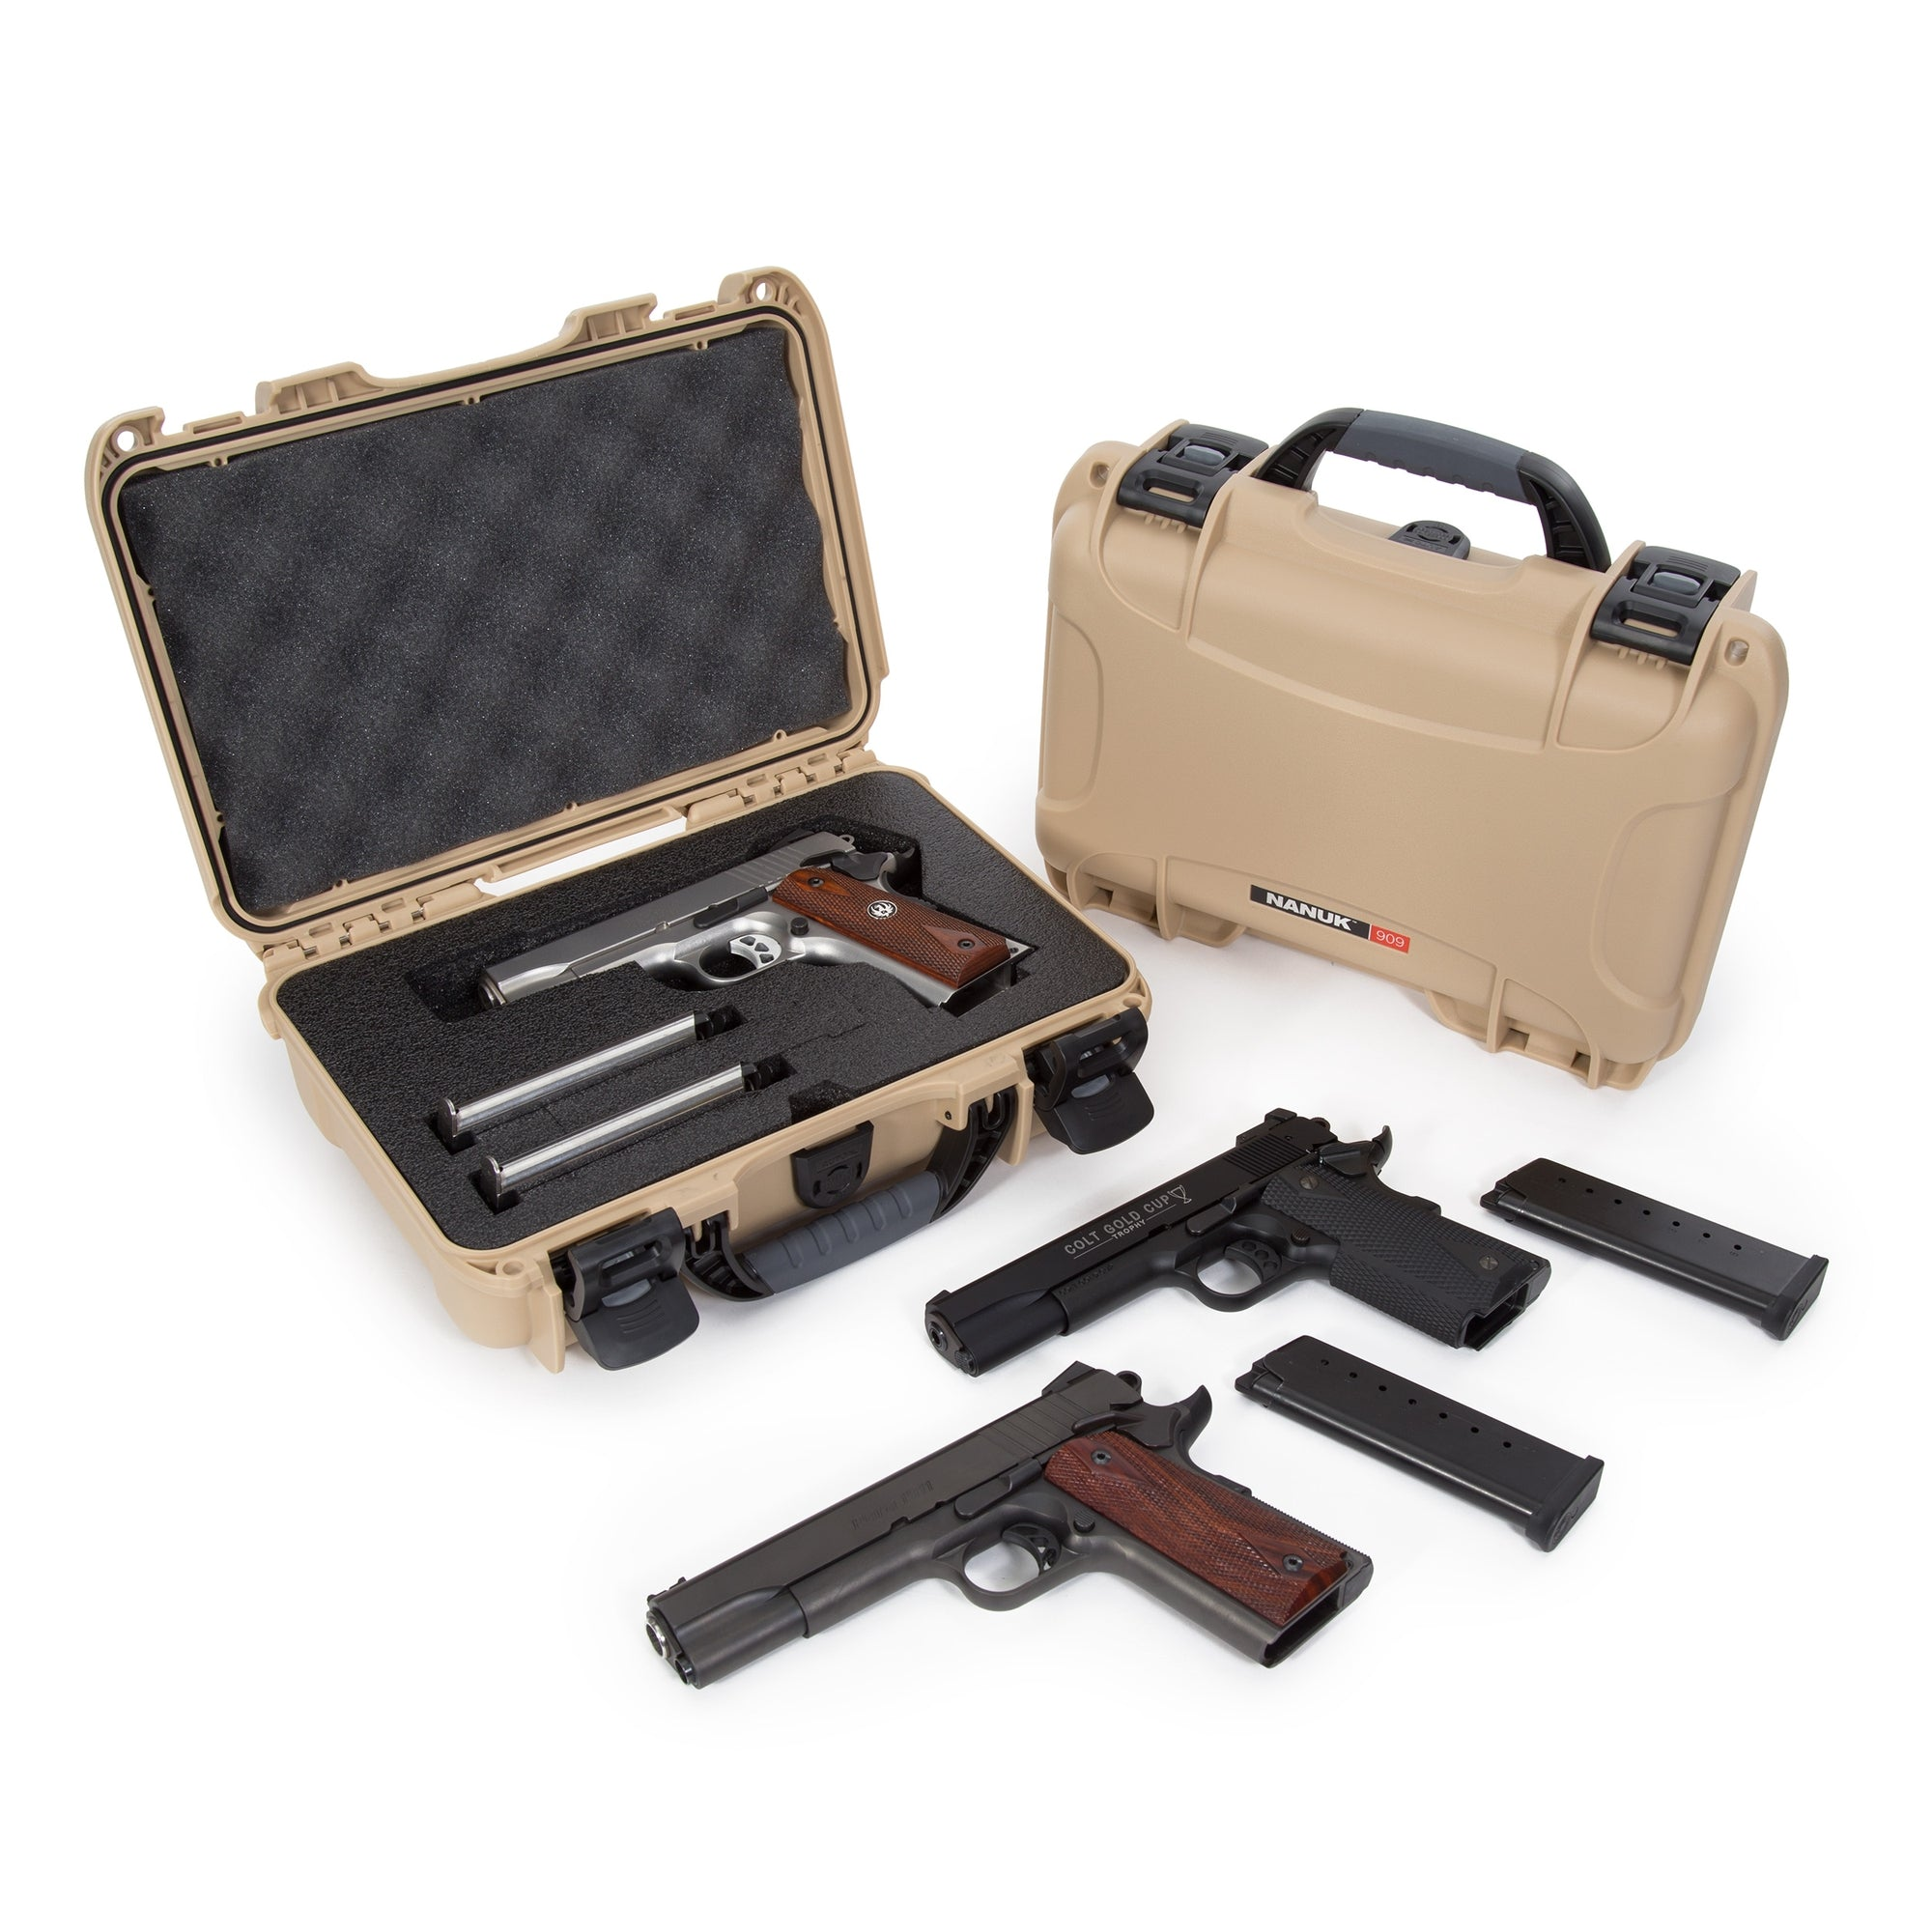 Nanuk 909 Pistol Case in Tan Color - A Small Case for one handgun